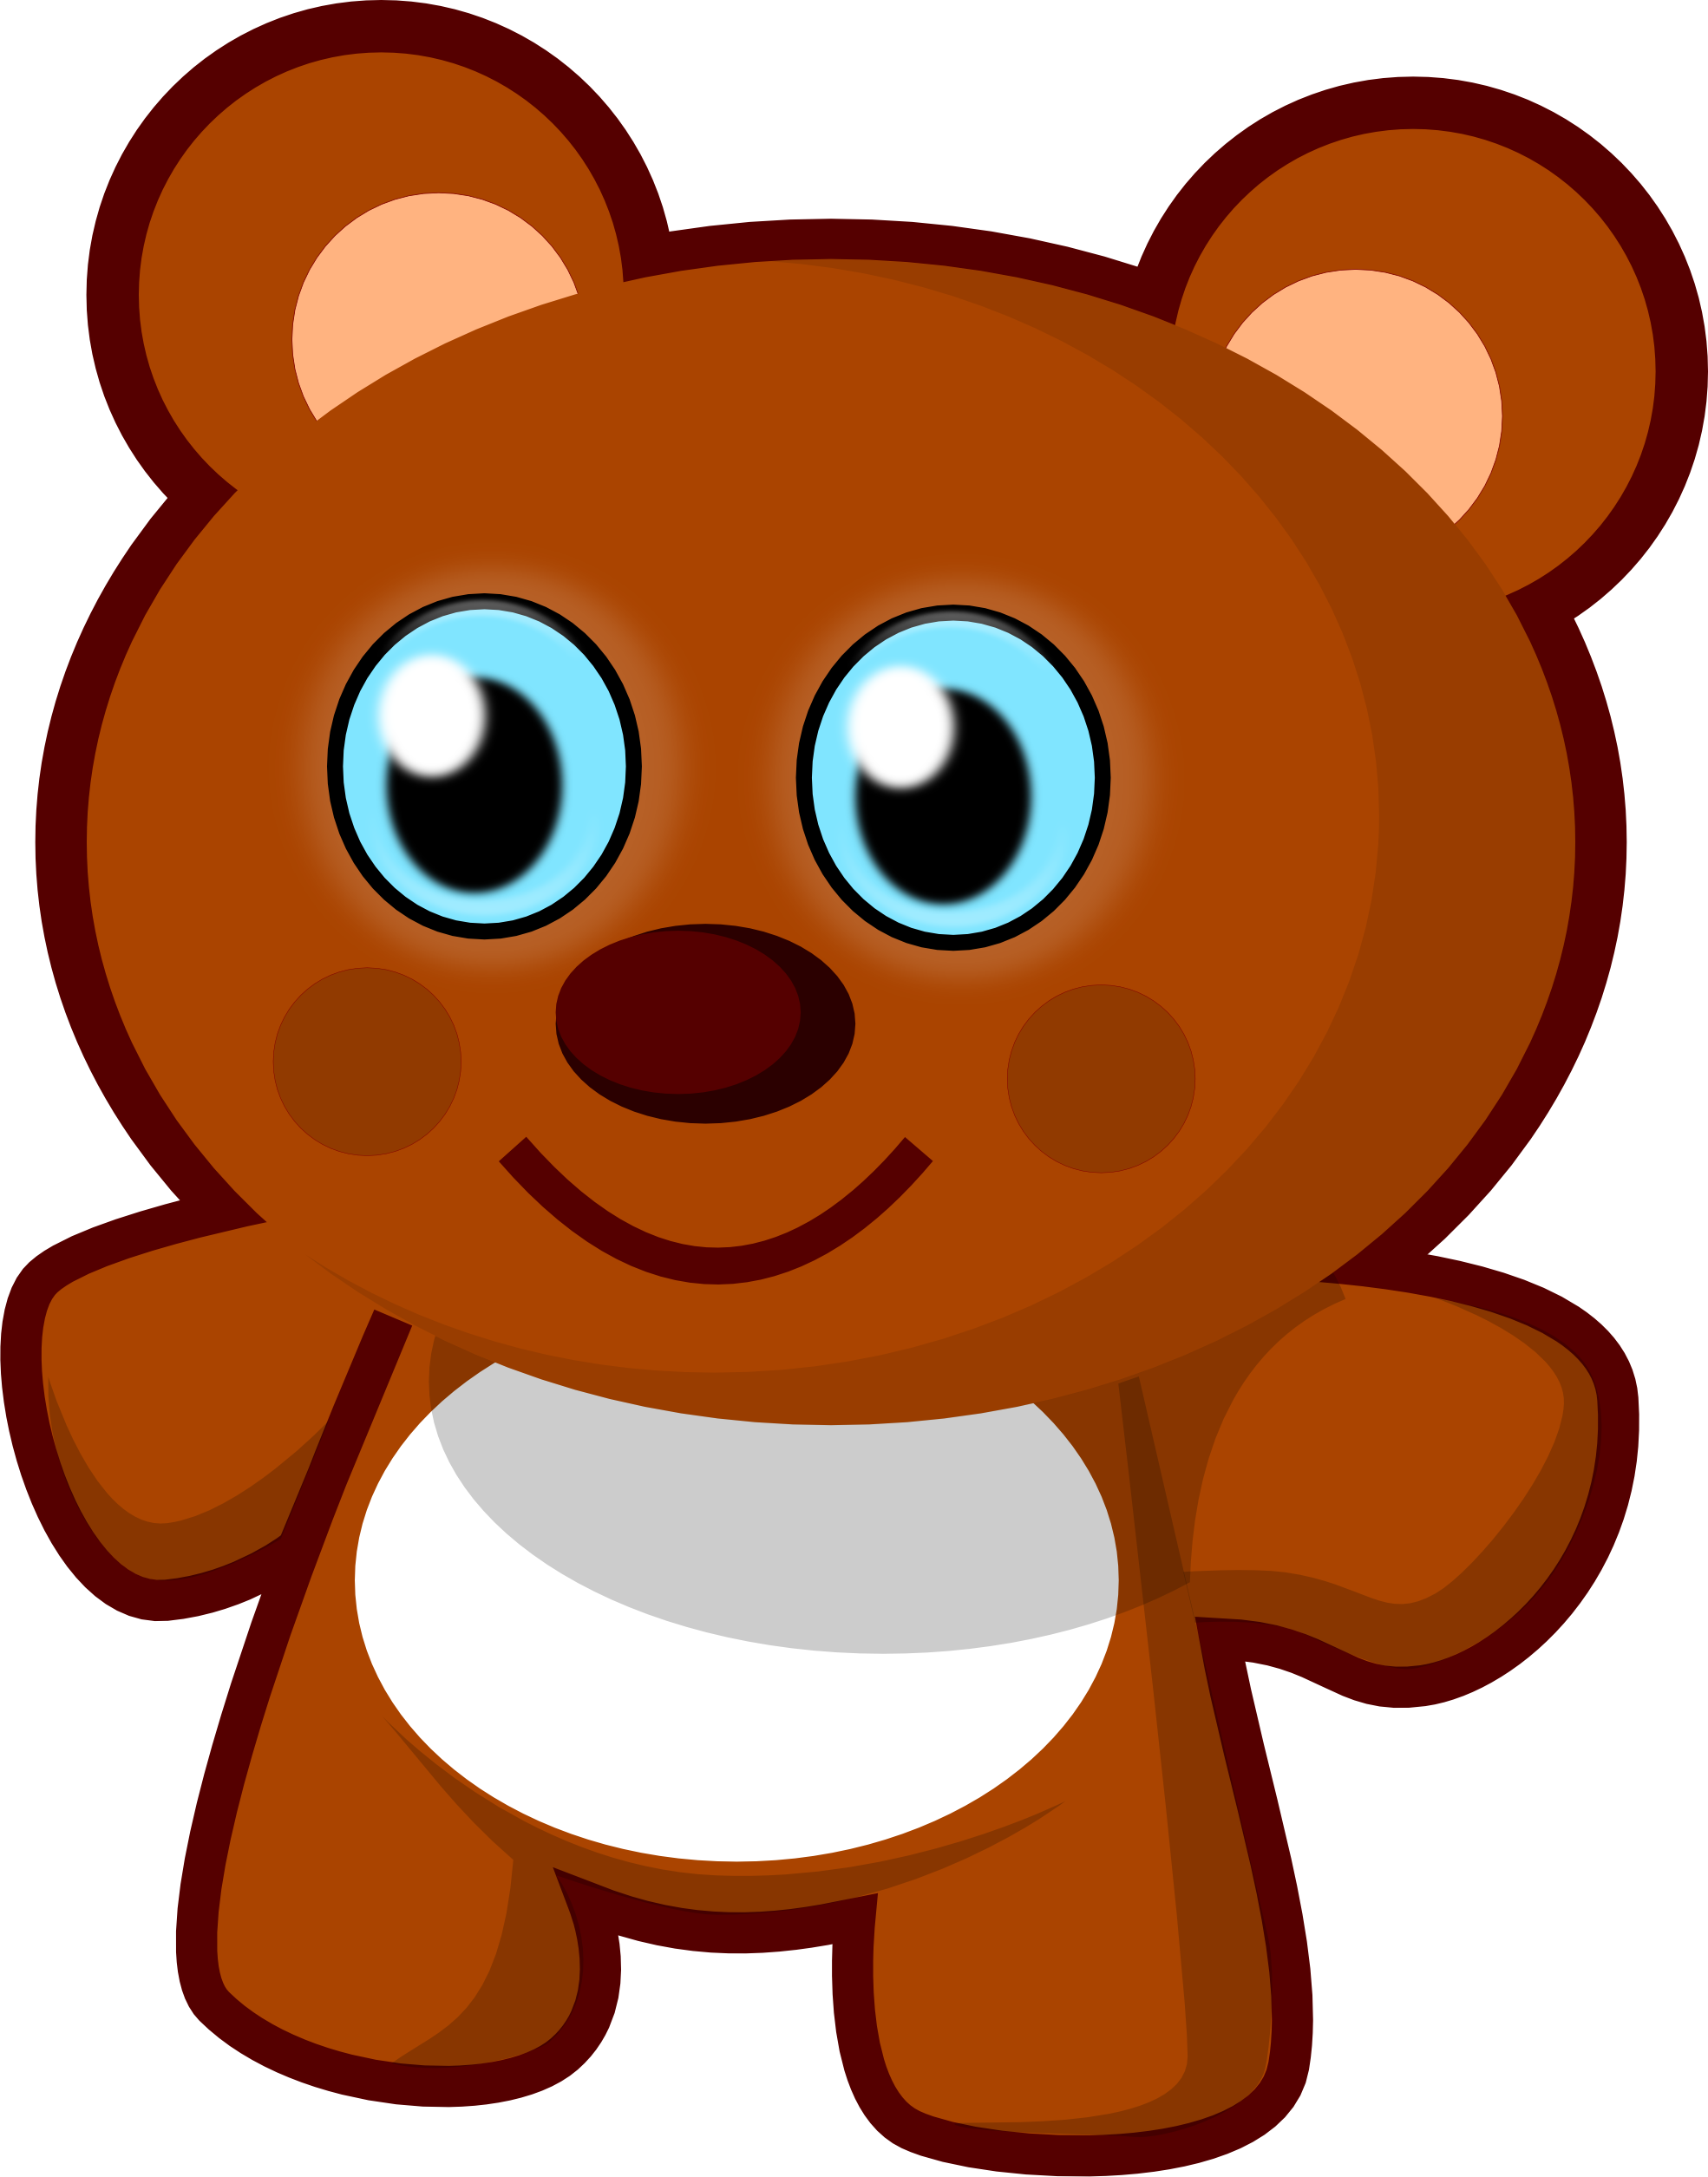 Animal clipart png. Collection of cute